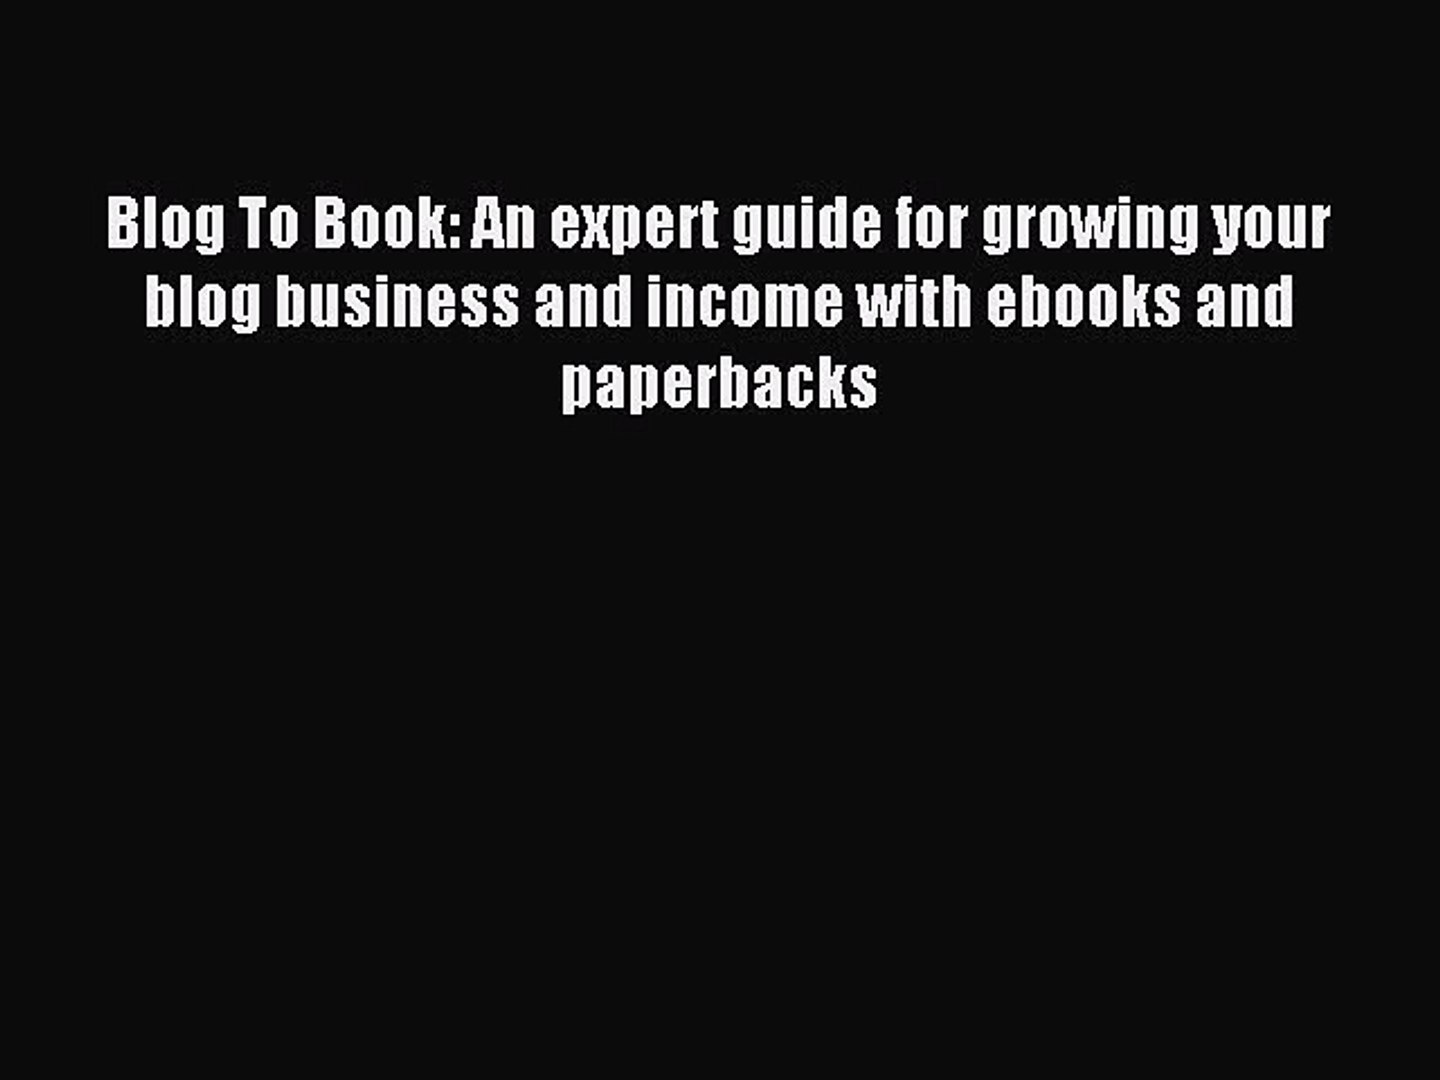 Read Blog To Book: An expert guide for growing your blog business and income with ebooks and